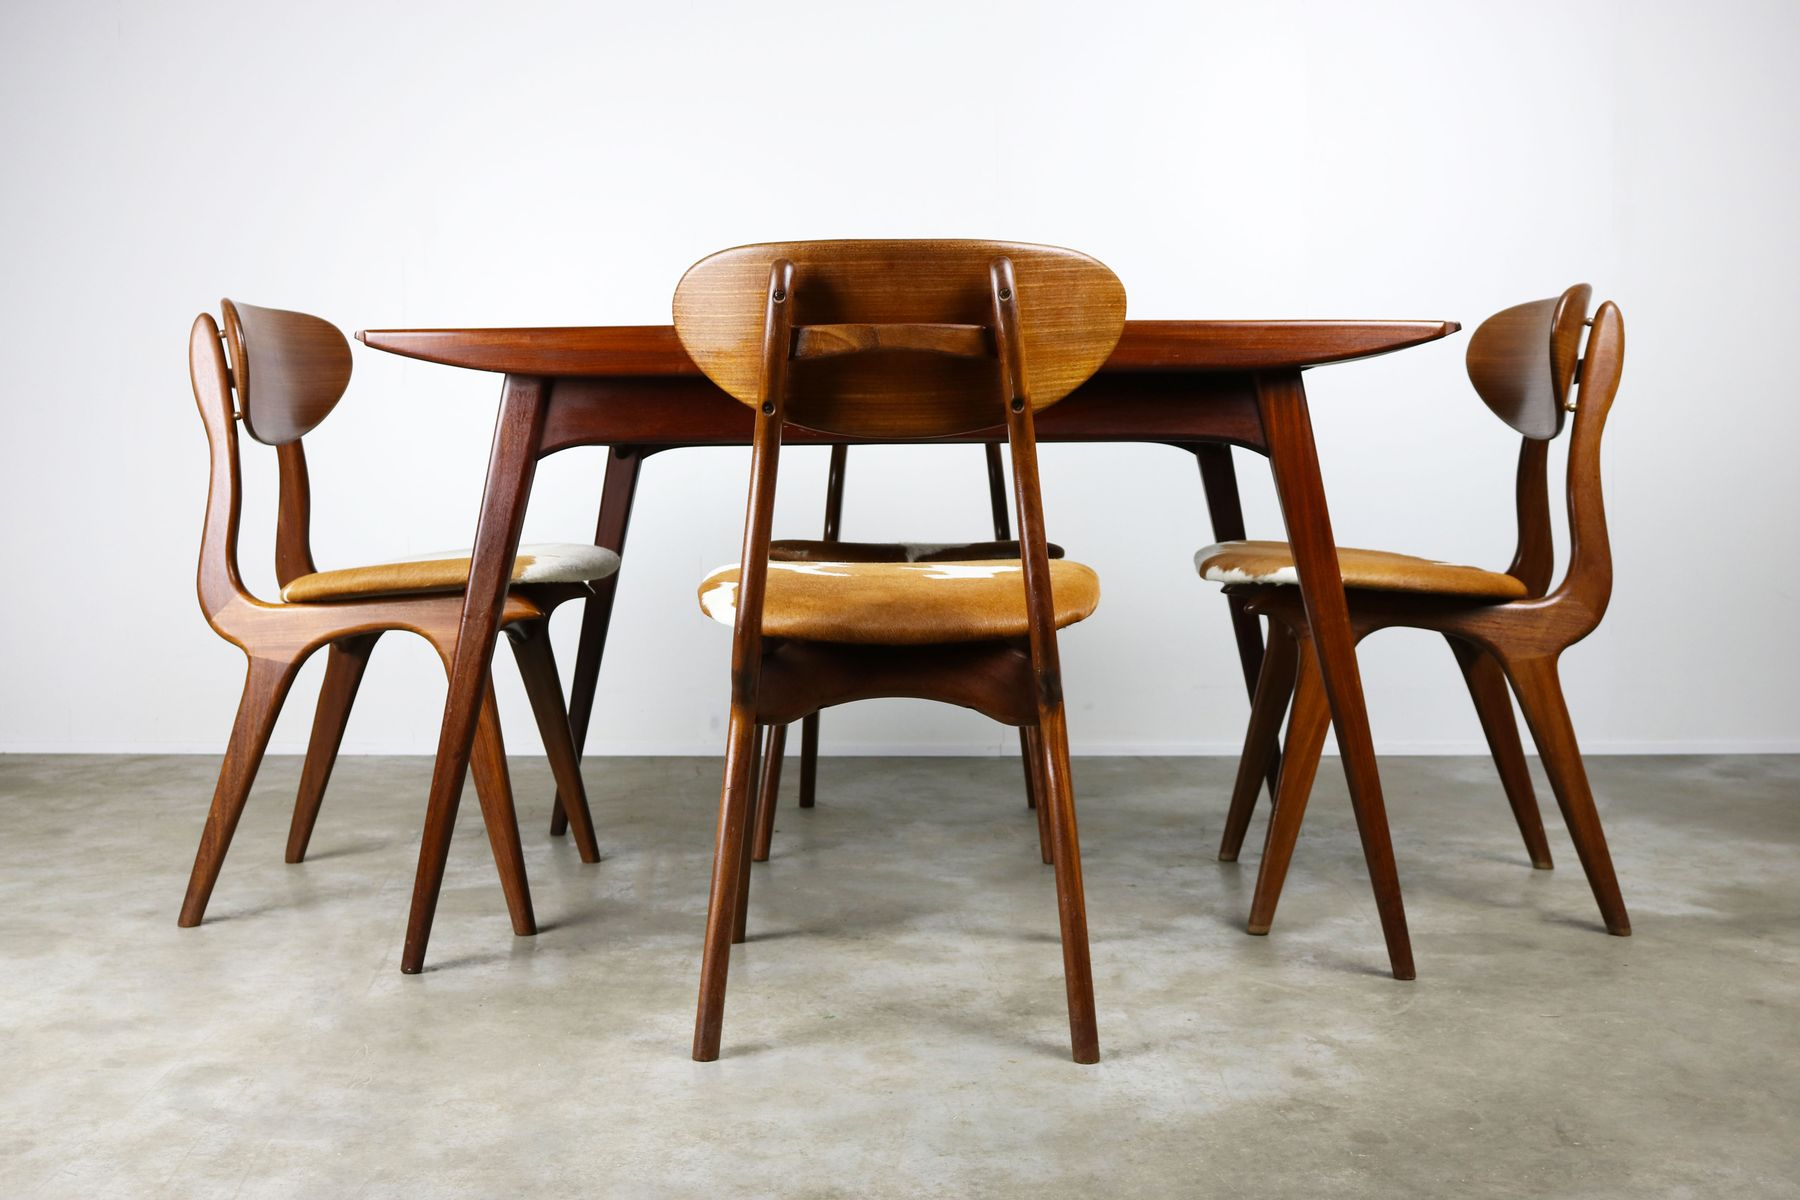 teak dining room set by louis van teeffelen for w b 1950s for sale at pamono. Black Bedroom Furniture Sets. Home Design Ideas